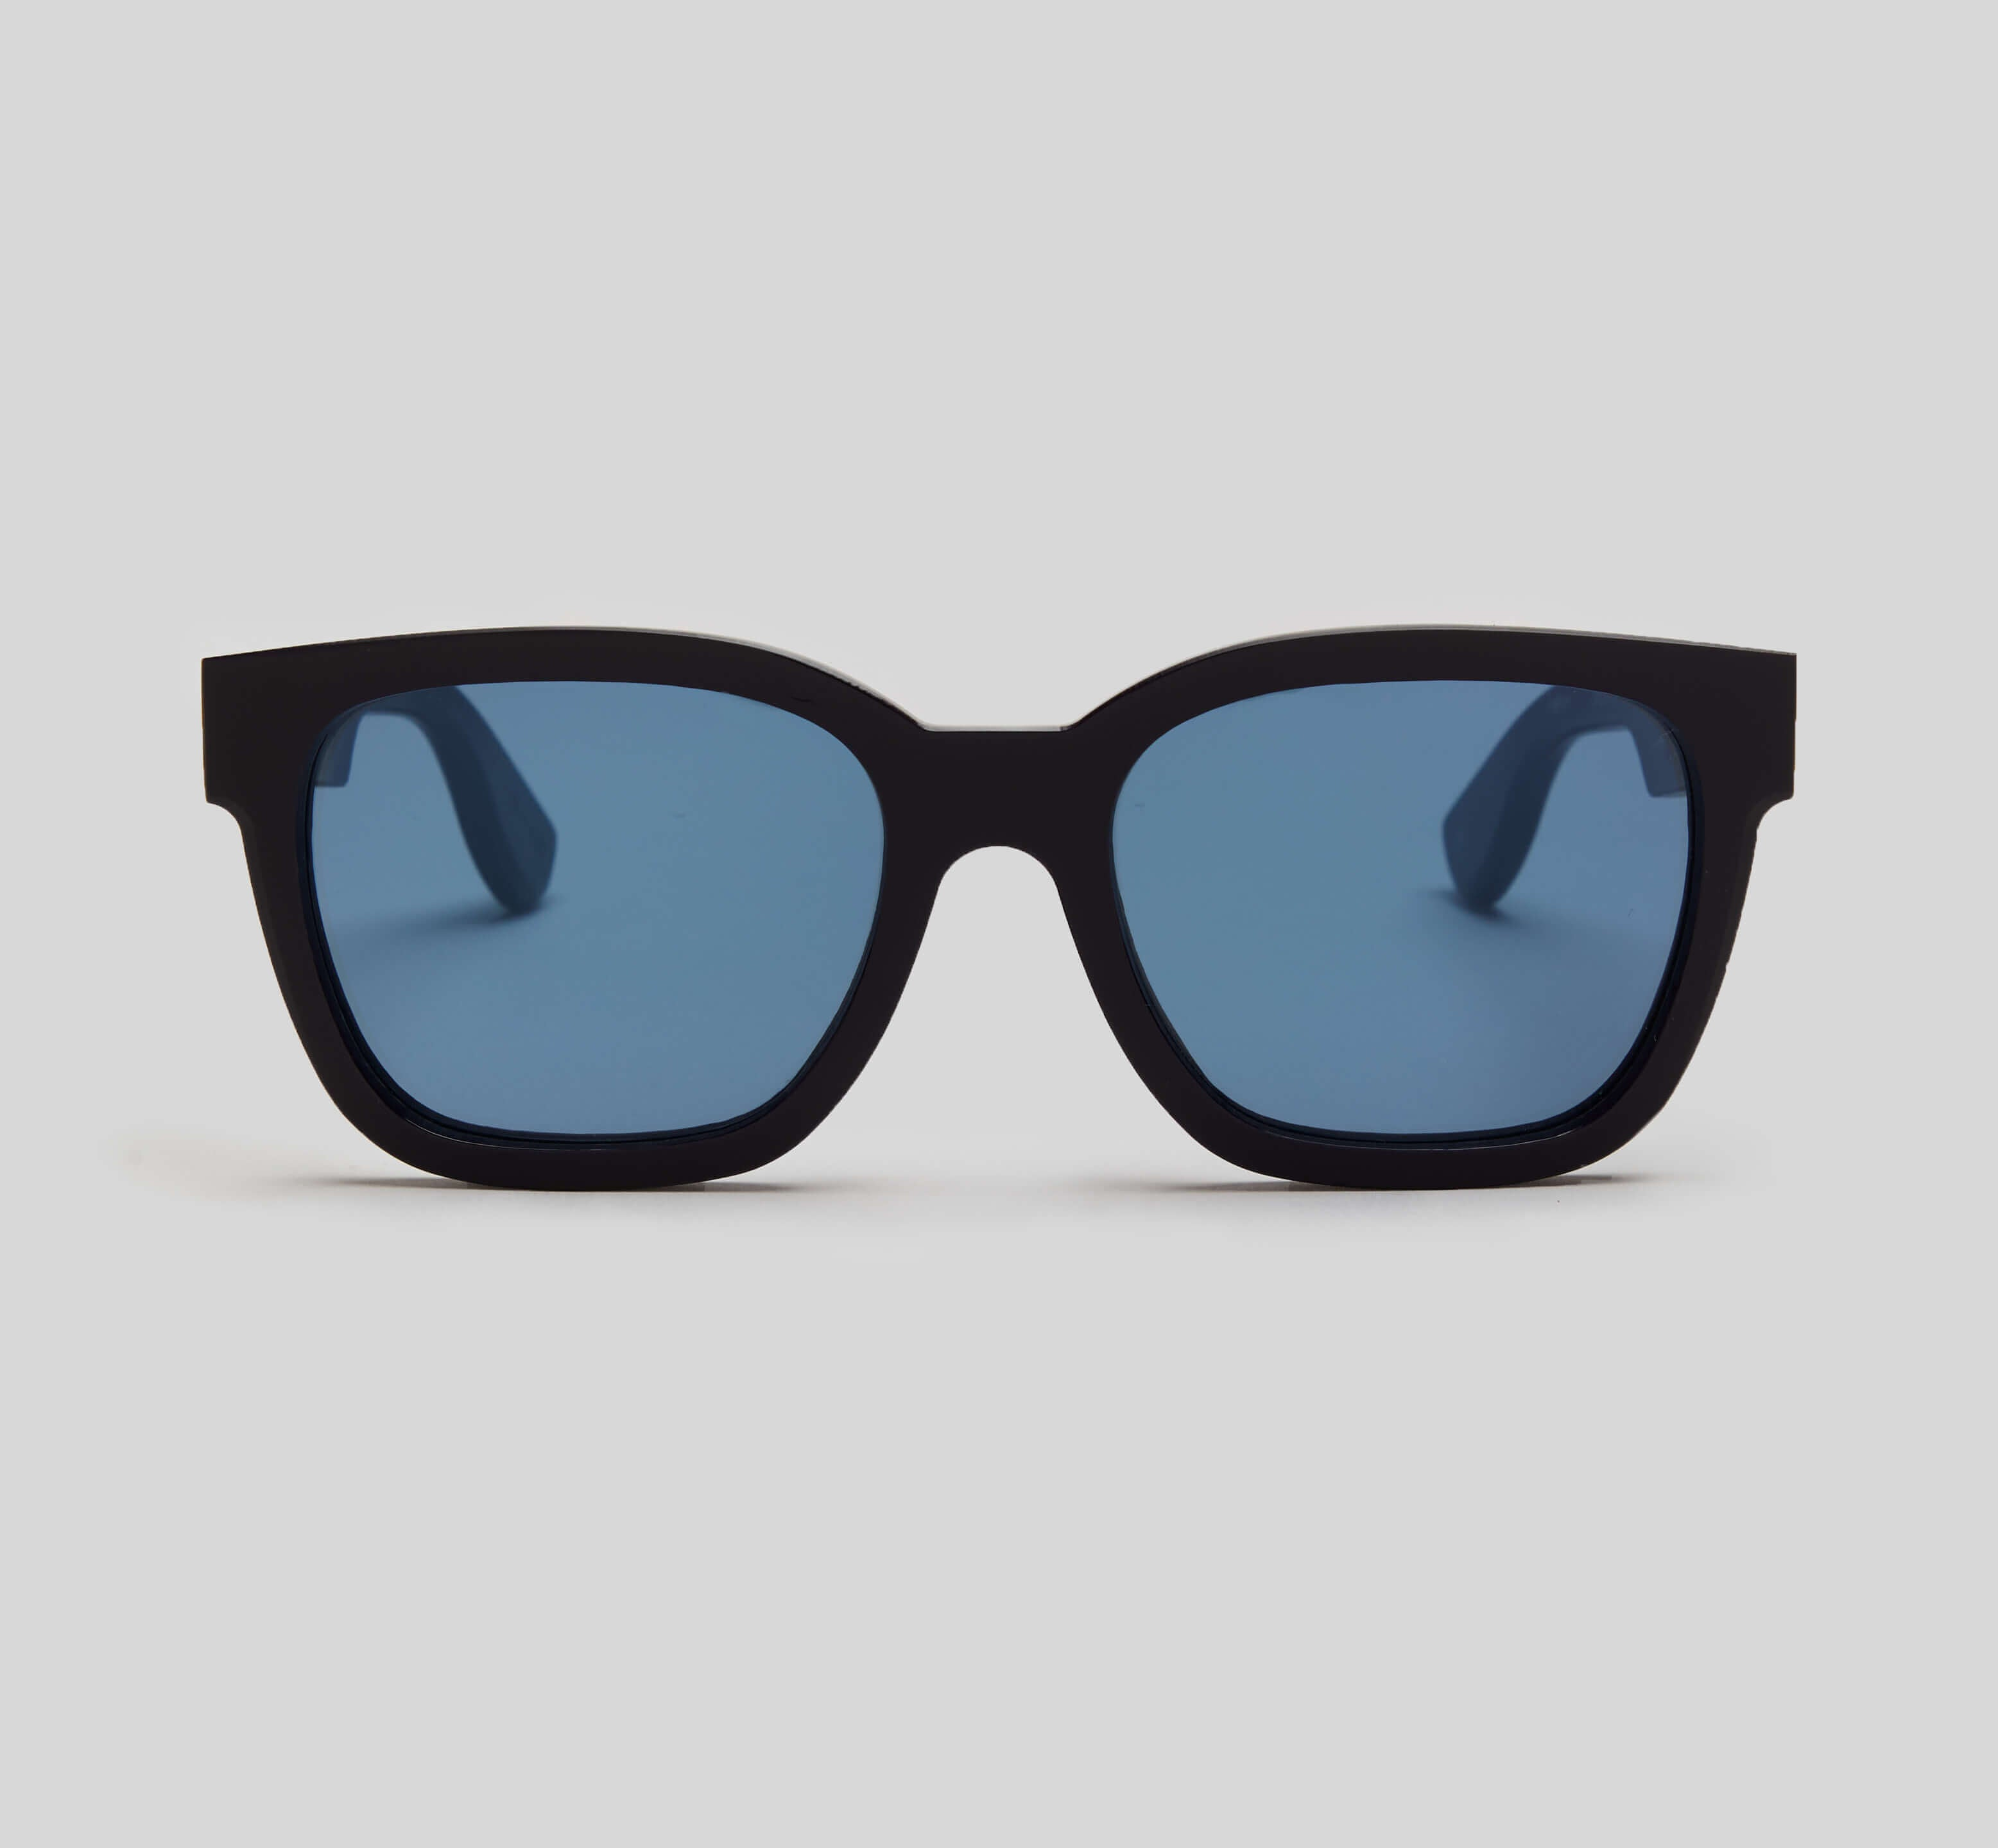 Navy square sunglasses eco friendly sustainable fashion made in Japan unisex sunglasses for men sunglasses for women and blue light filter